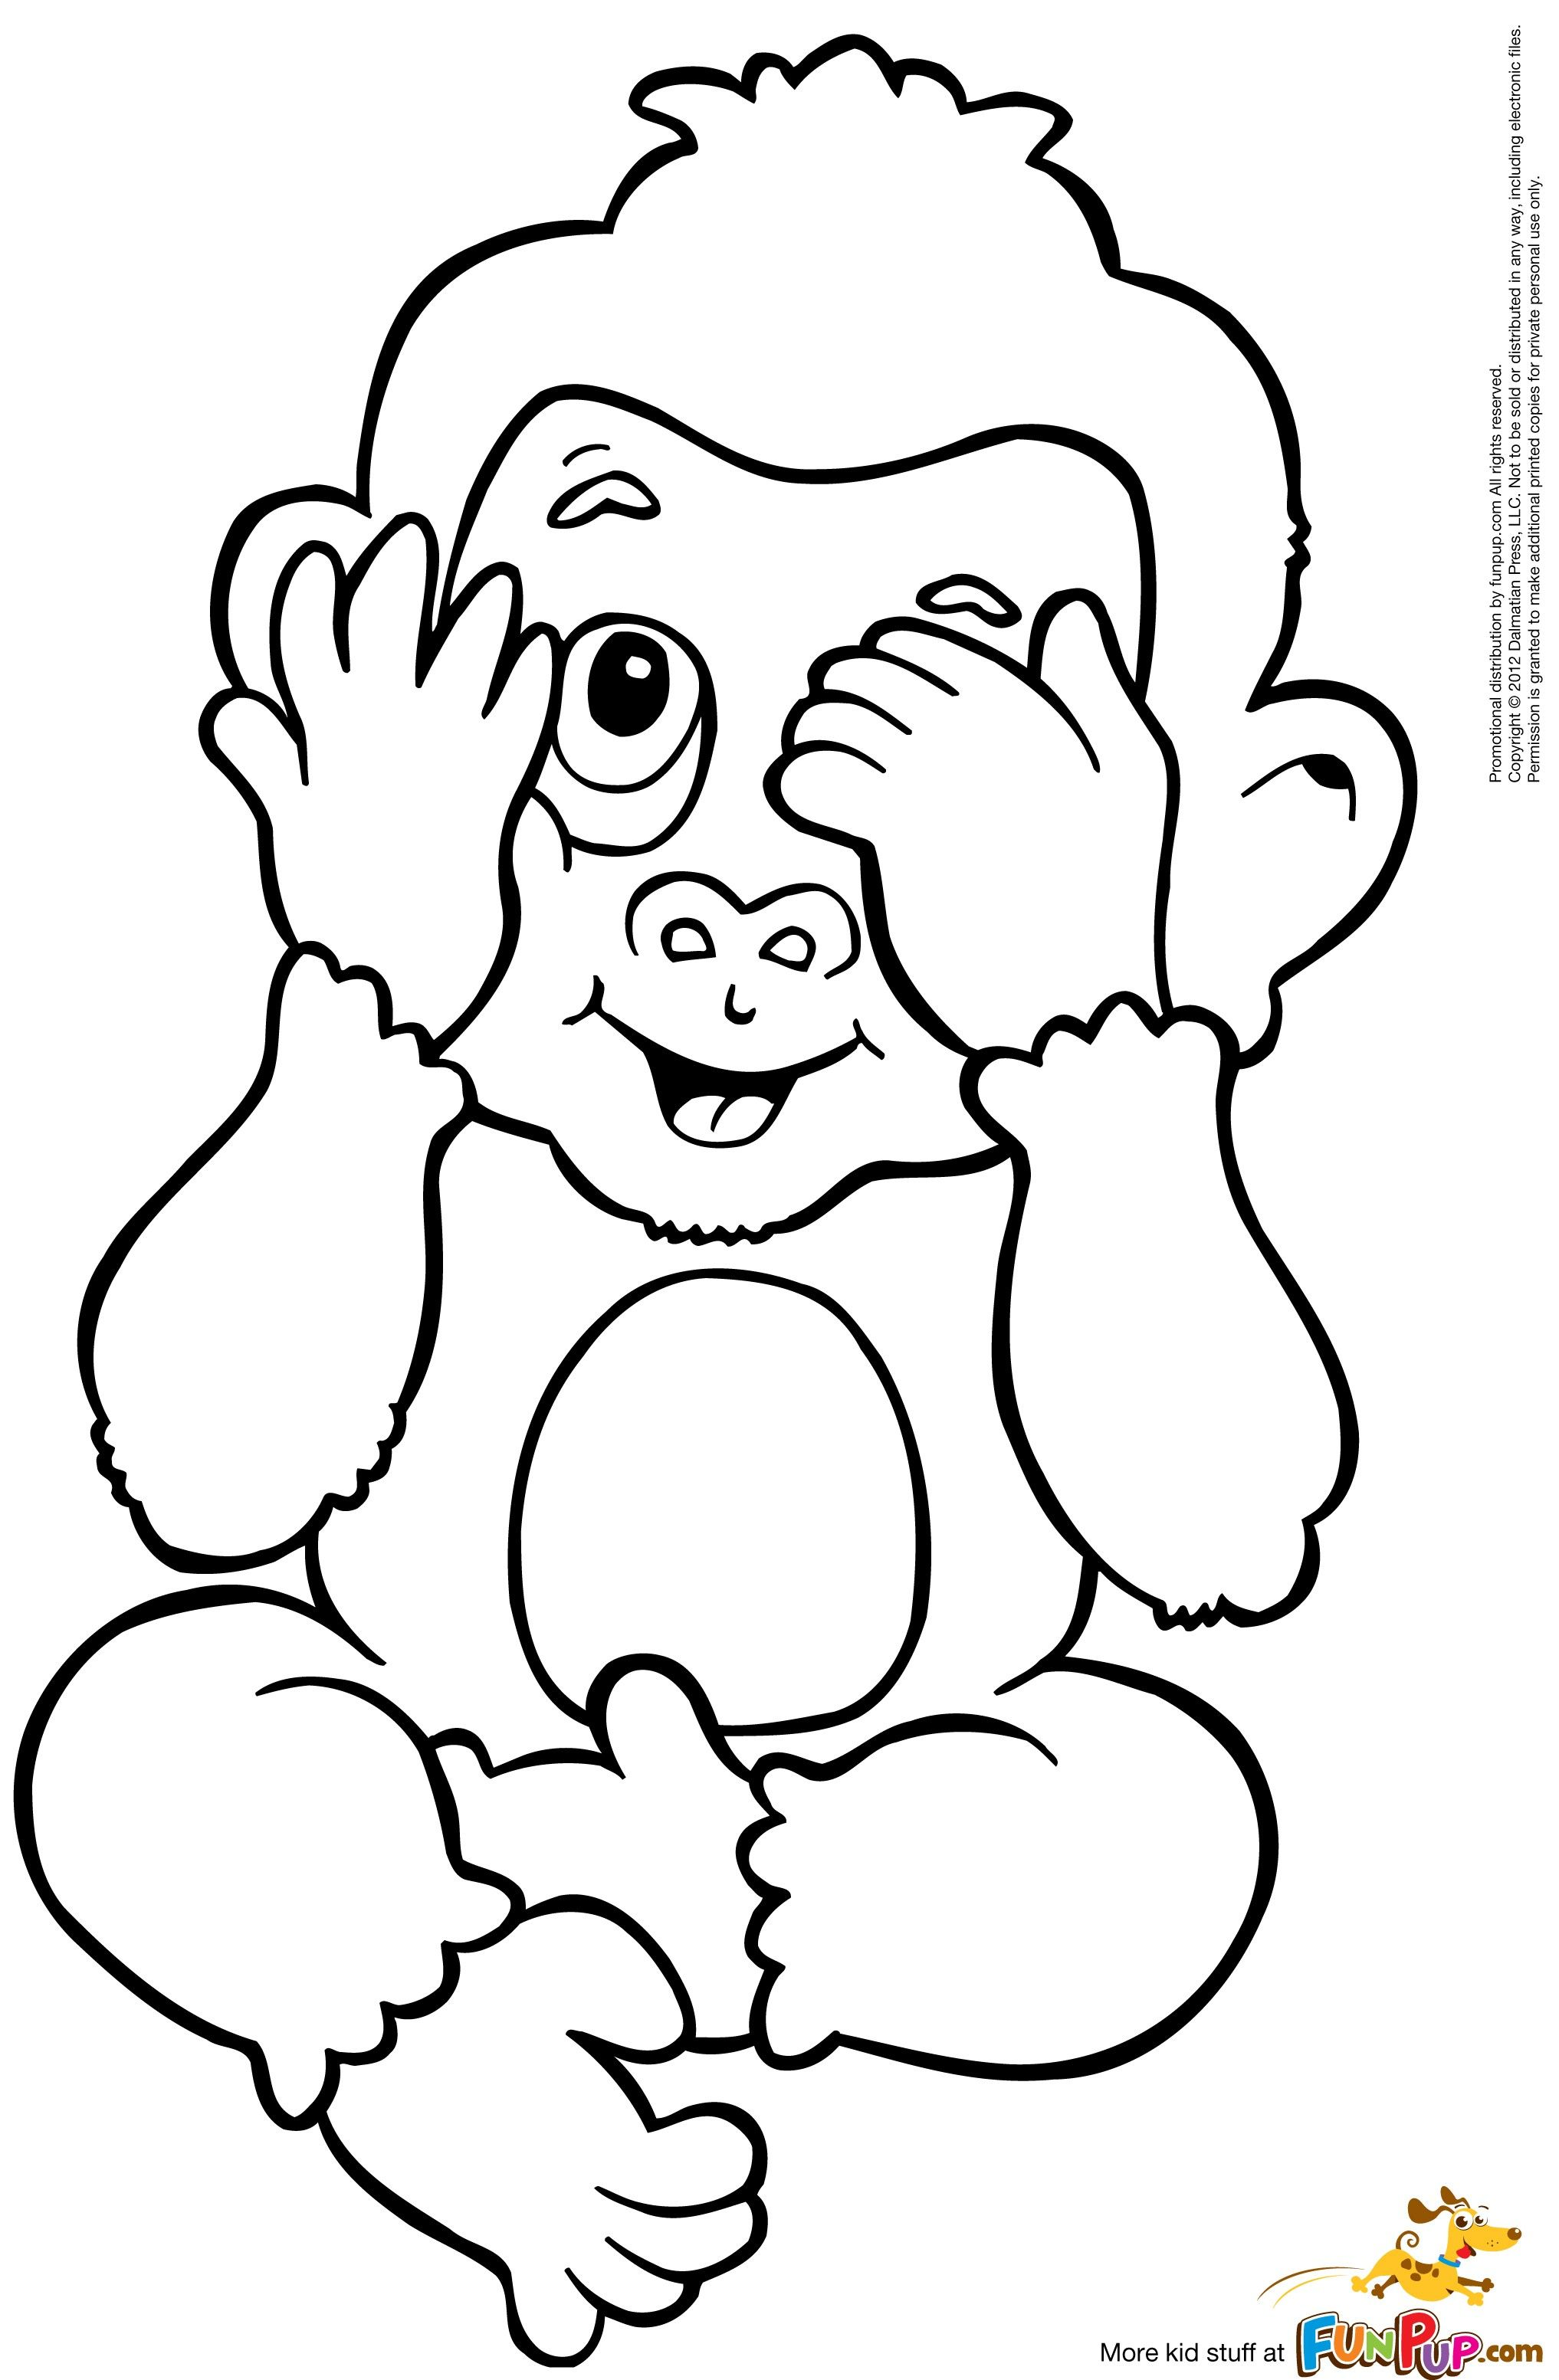 Cute Baby Owl Coloring Pages Pictures Online Images Collection